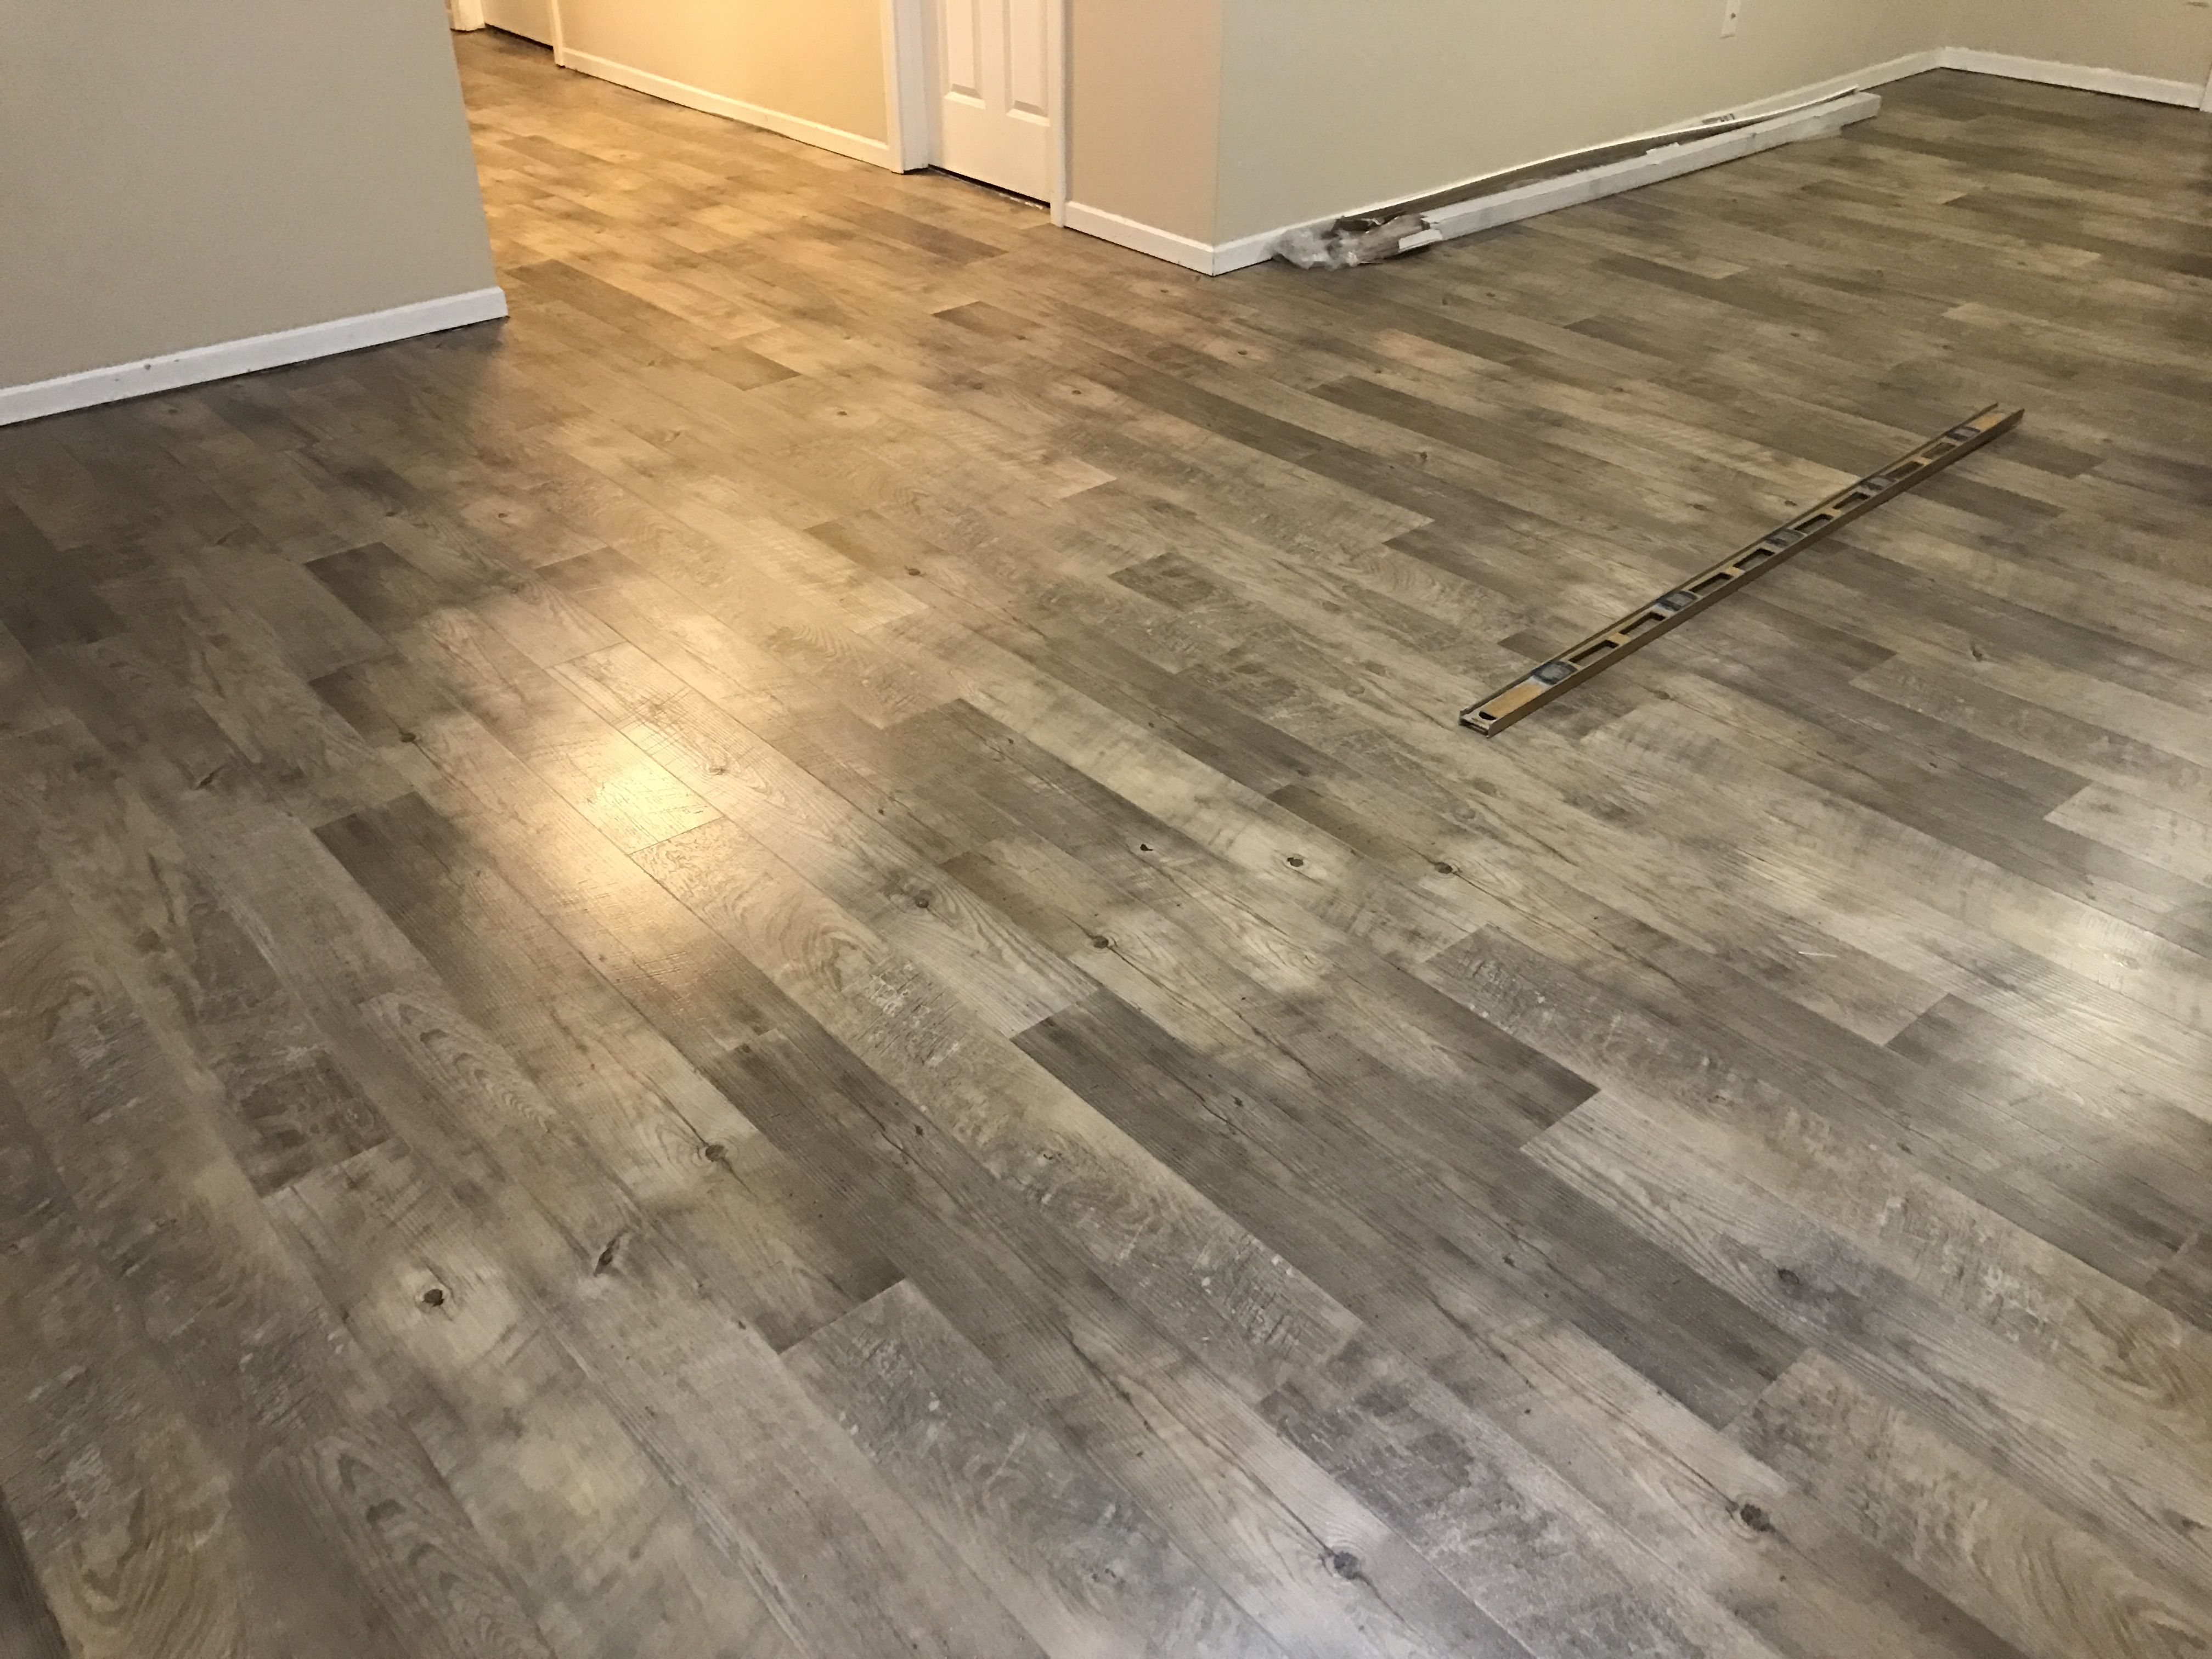 Sample Weathered Pine Best Floor For Dogs Installing Vinyl Plank Flooring Luxury Vinyl Plank Vinyl Plank Flooring